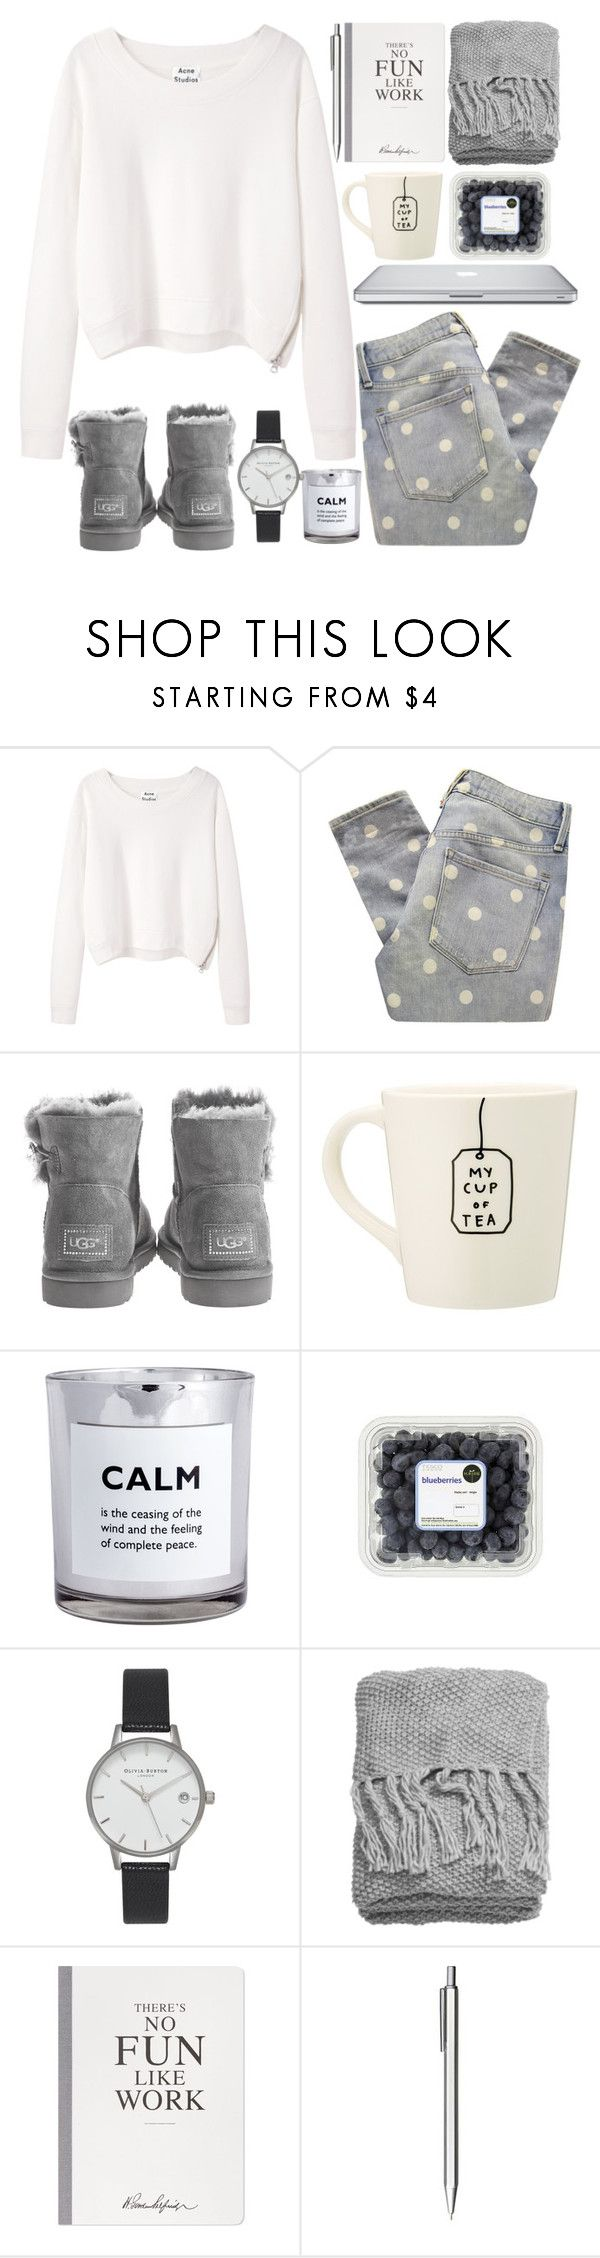 """""""Saturday"""" by dreamcloset1996 ❤ liked on Polyvore featuring Acne Studios, Marc by Marc Jacobs, Novo, UGG Australia, H&M, Olivia Burton, Selfridges, Muji, women's clothing and women's fashion"""